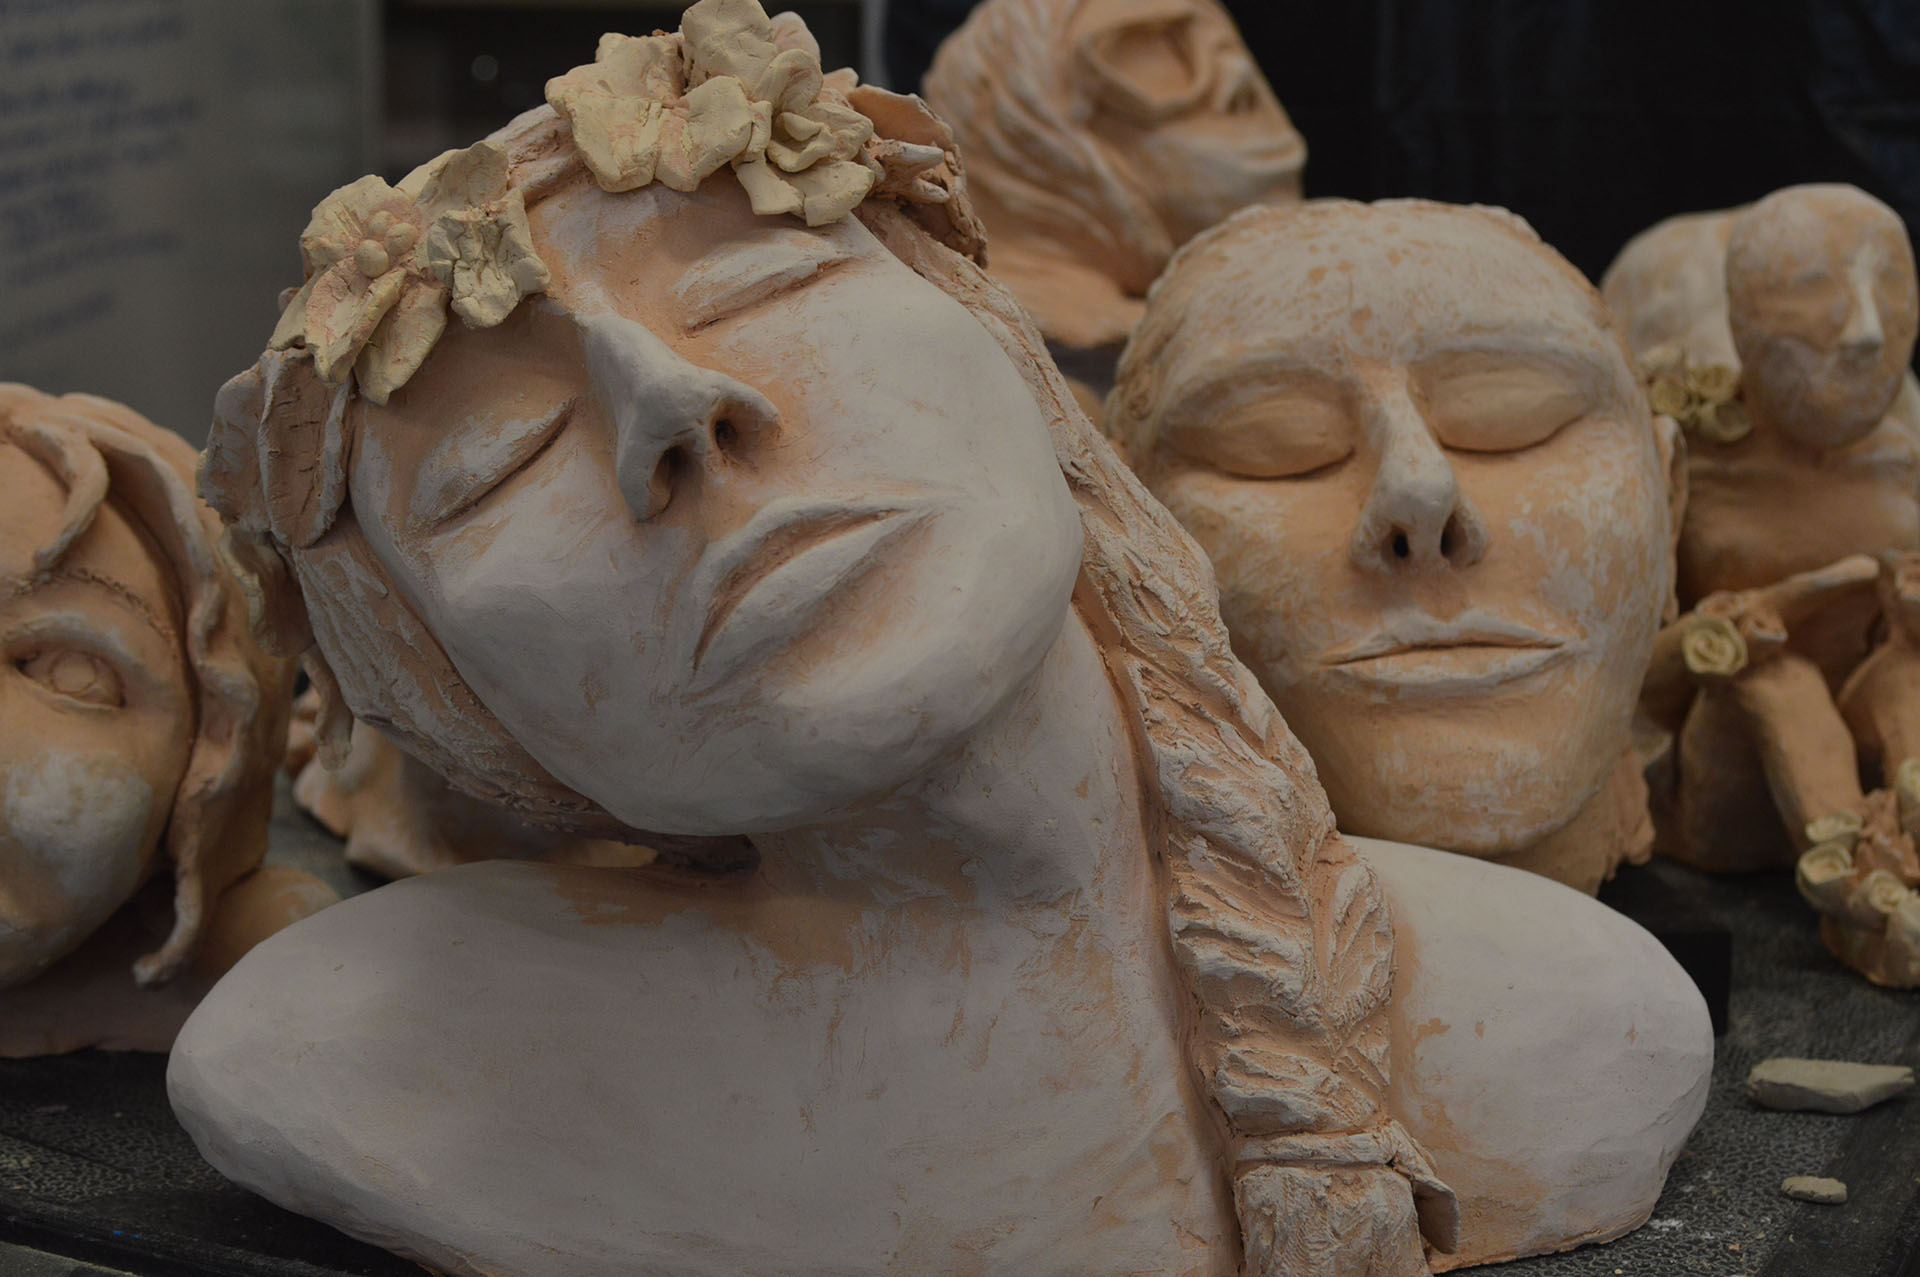 Art classes work on sculpting heads and bodies | Riverside Eddy